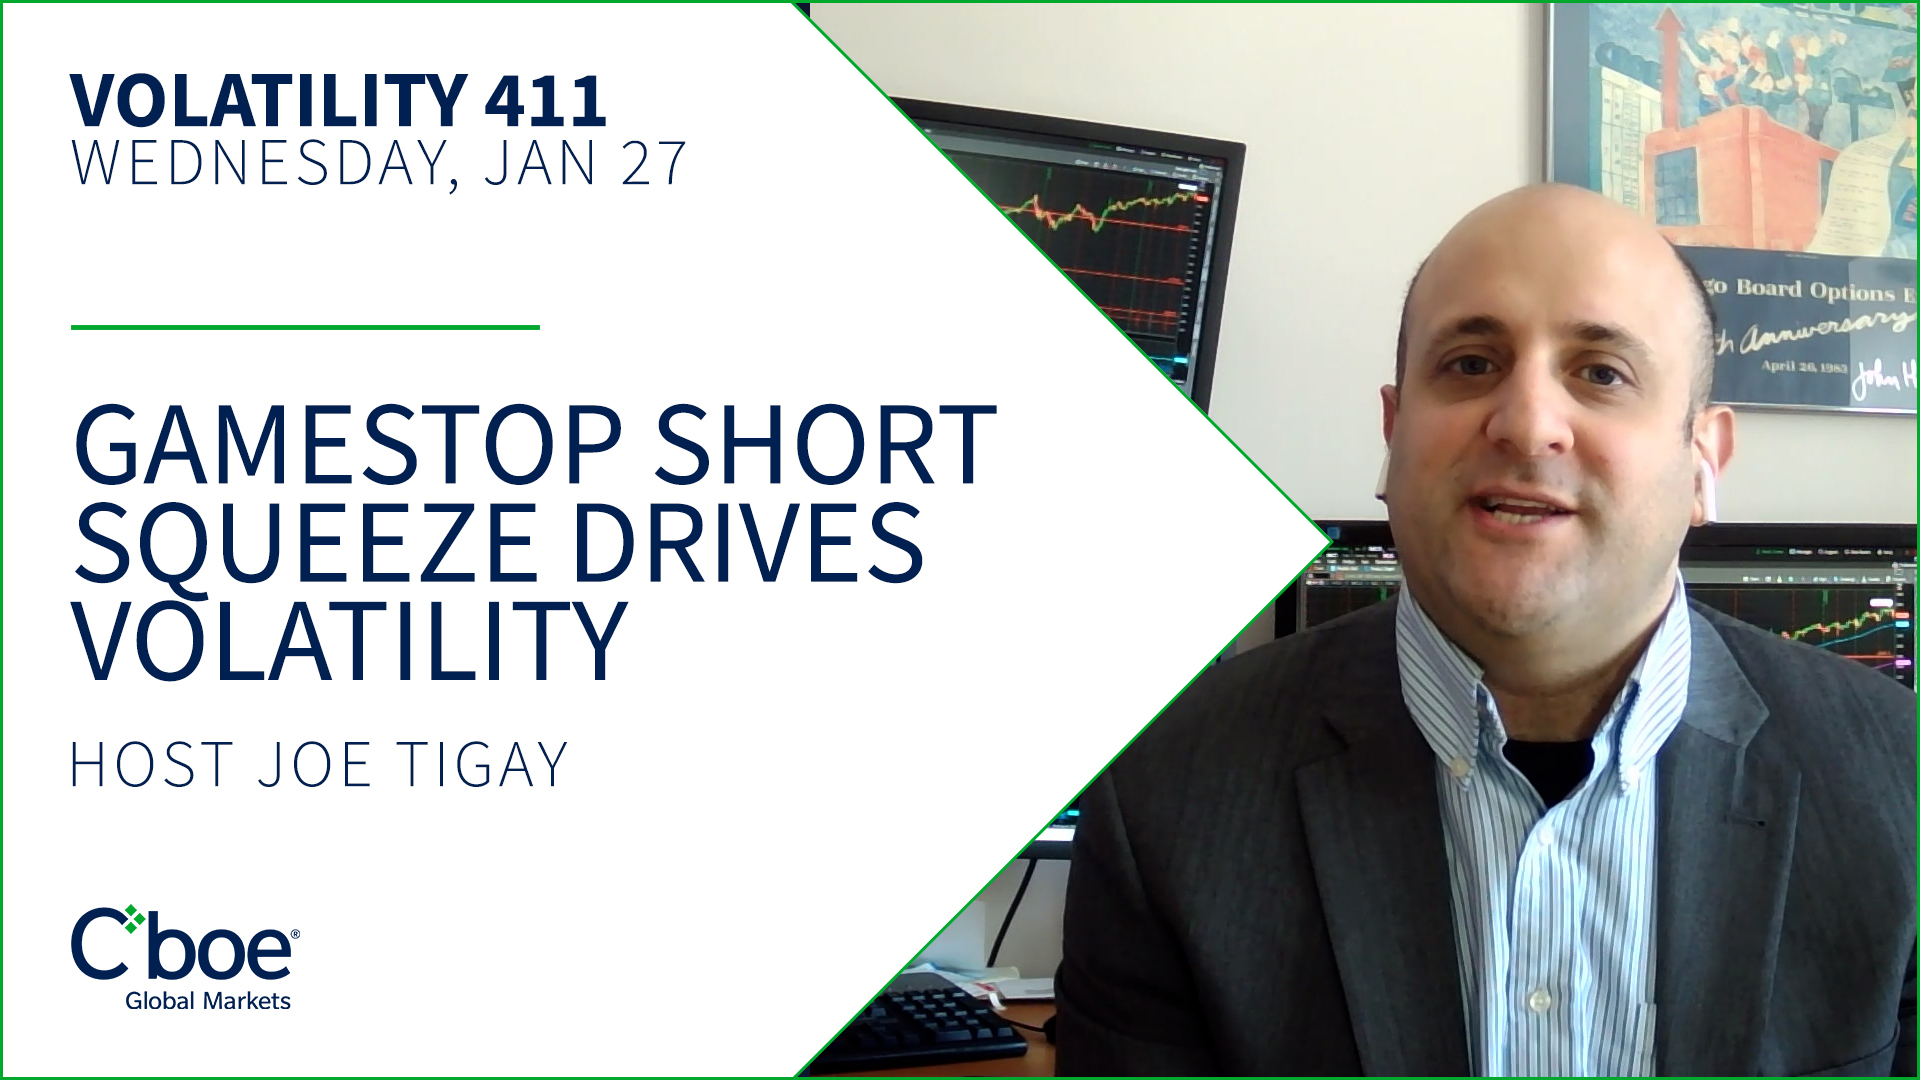 GameStop Short Squeeze Drives Volatility Thumbnail